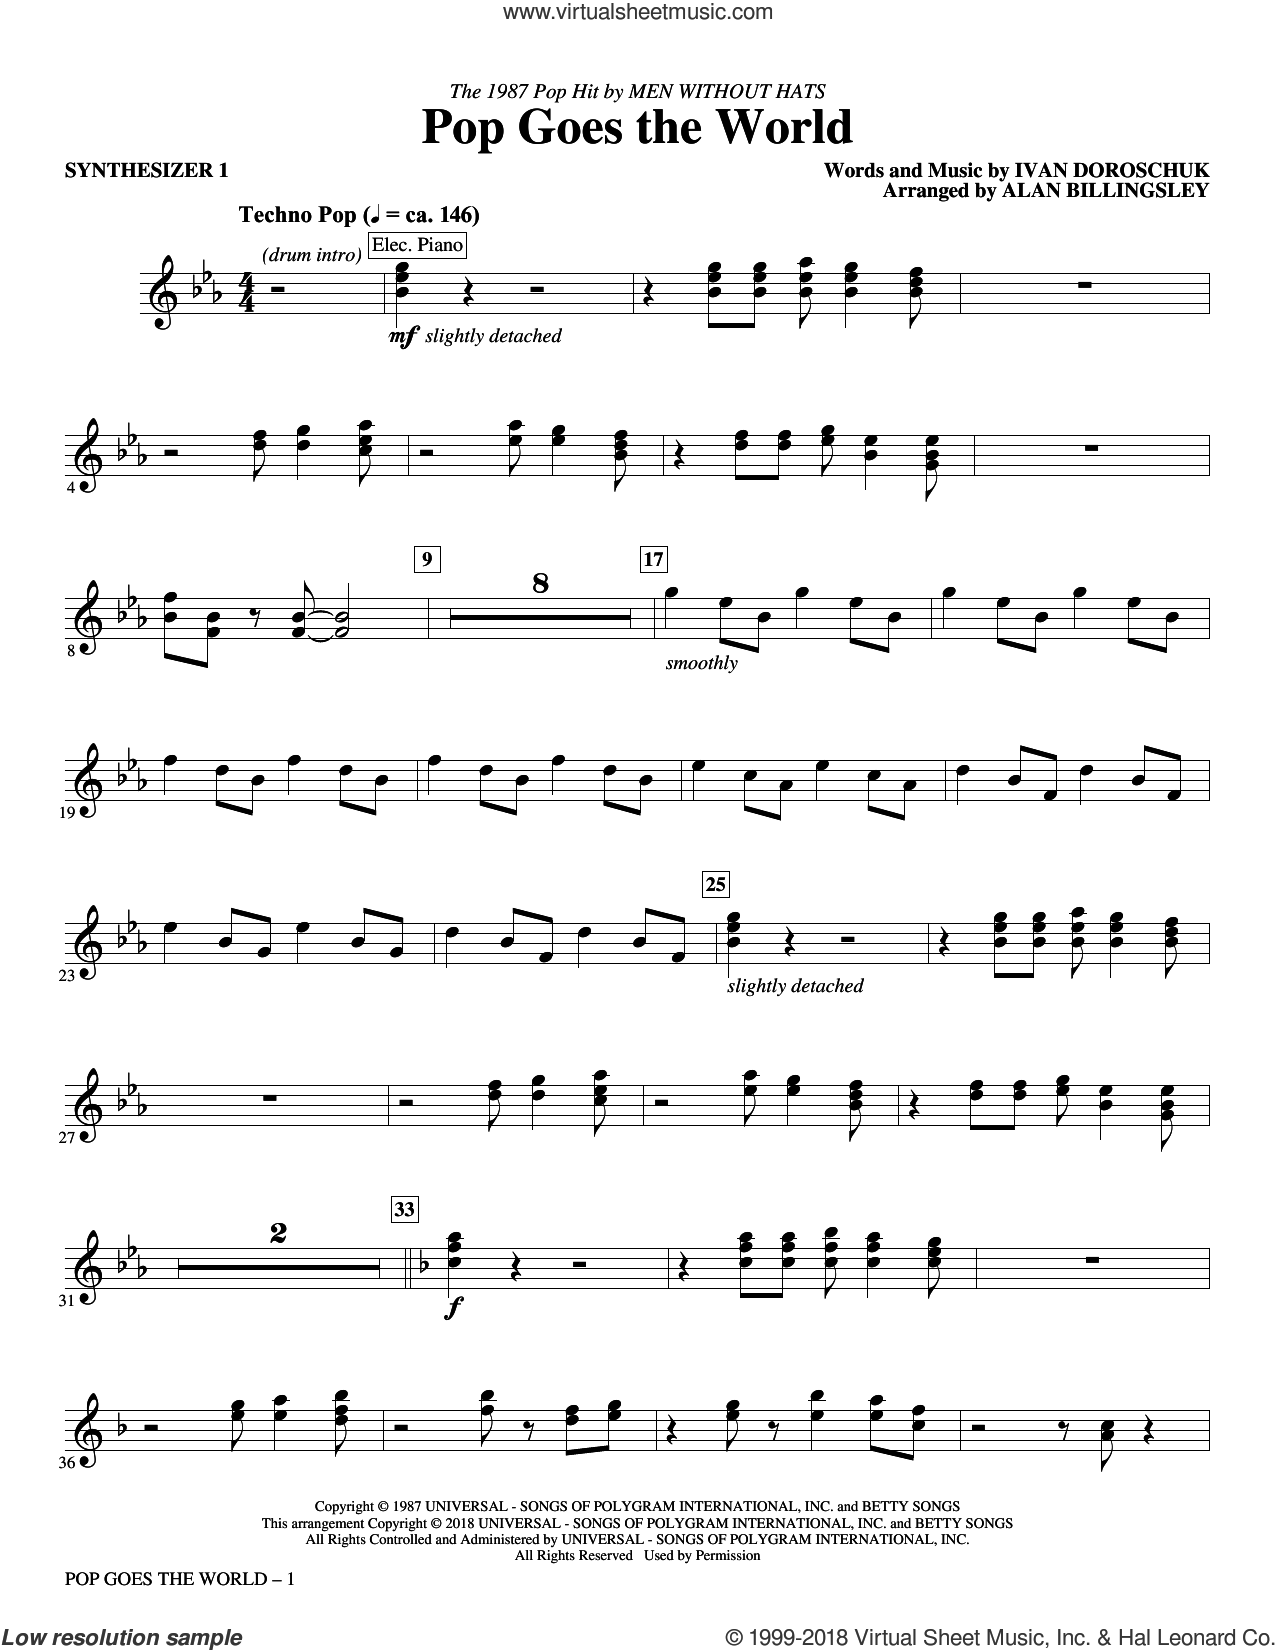 Pop Goes the World (complete set of parts) sheet music for orchestra/band by Alan Billingsley, Ivan Doroschuk and Men Without Hats, intermediate skill level